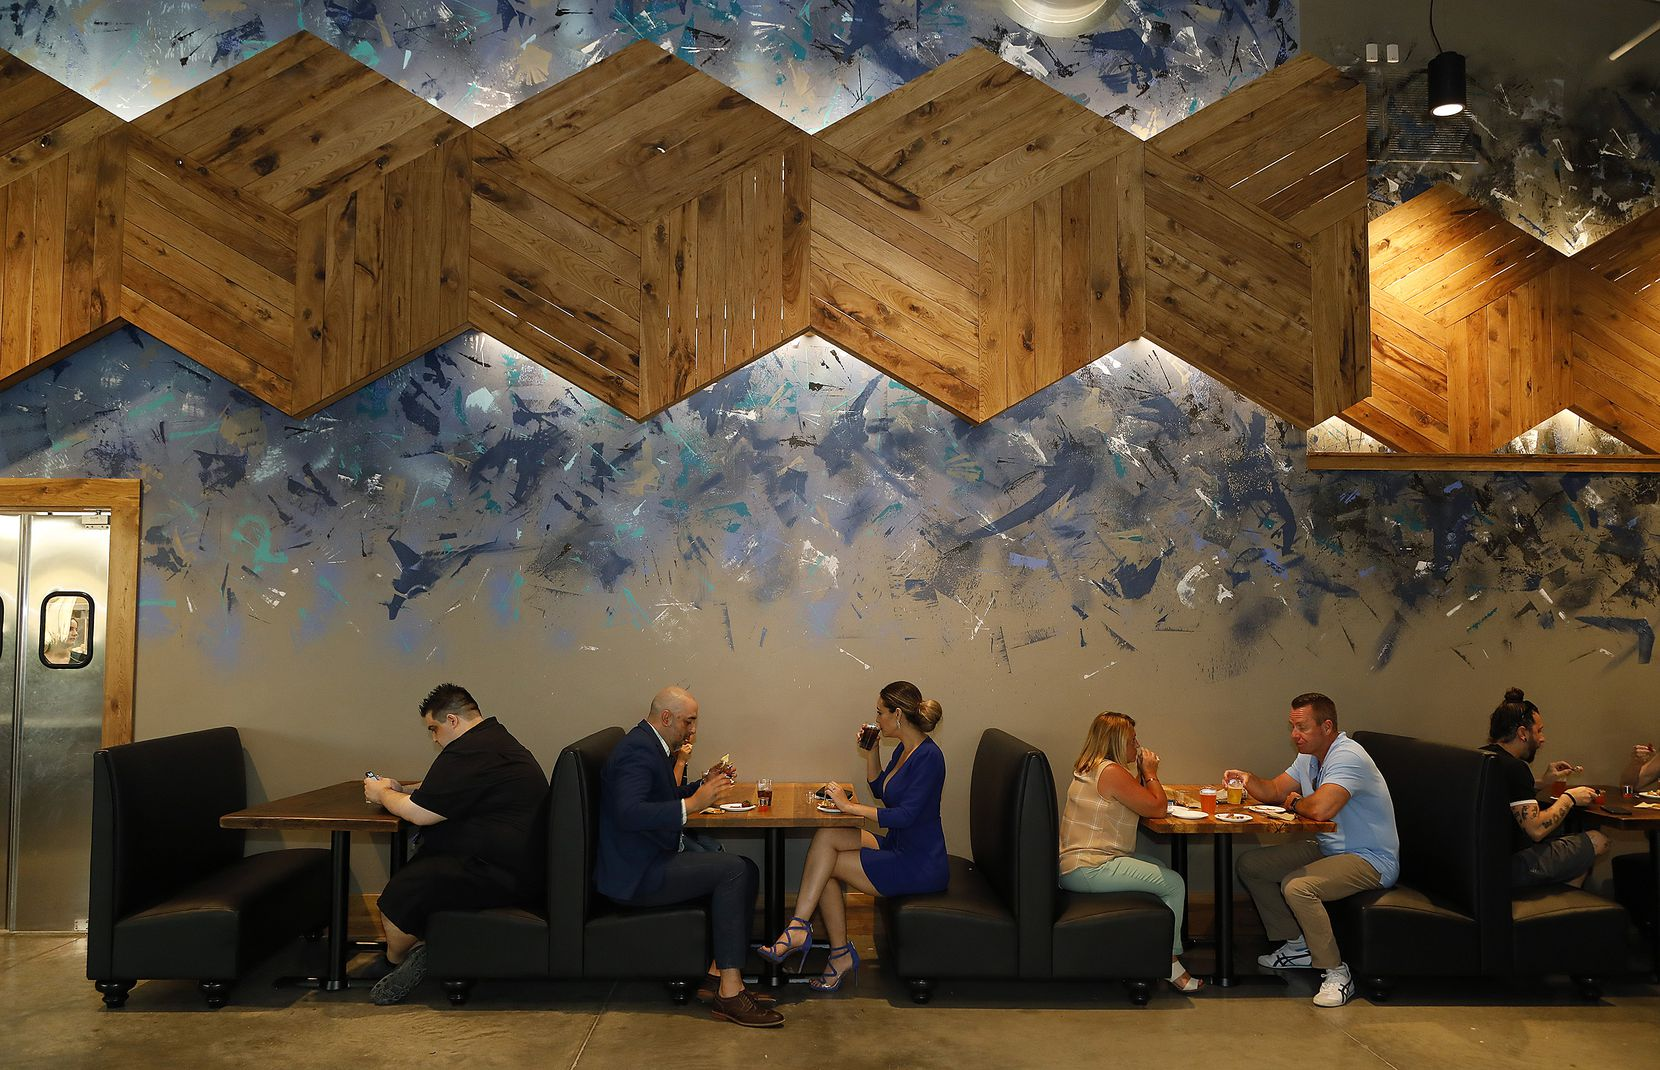 Artist Dan Black painted the art at Barley & Board. The six-sided pieces of wood, which change color throughout the restaurant, are supposed to artistically show the lifecycle of barley, the grain used to brew beer.